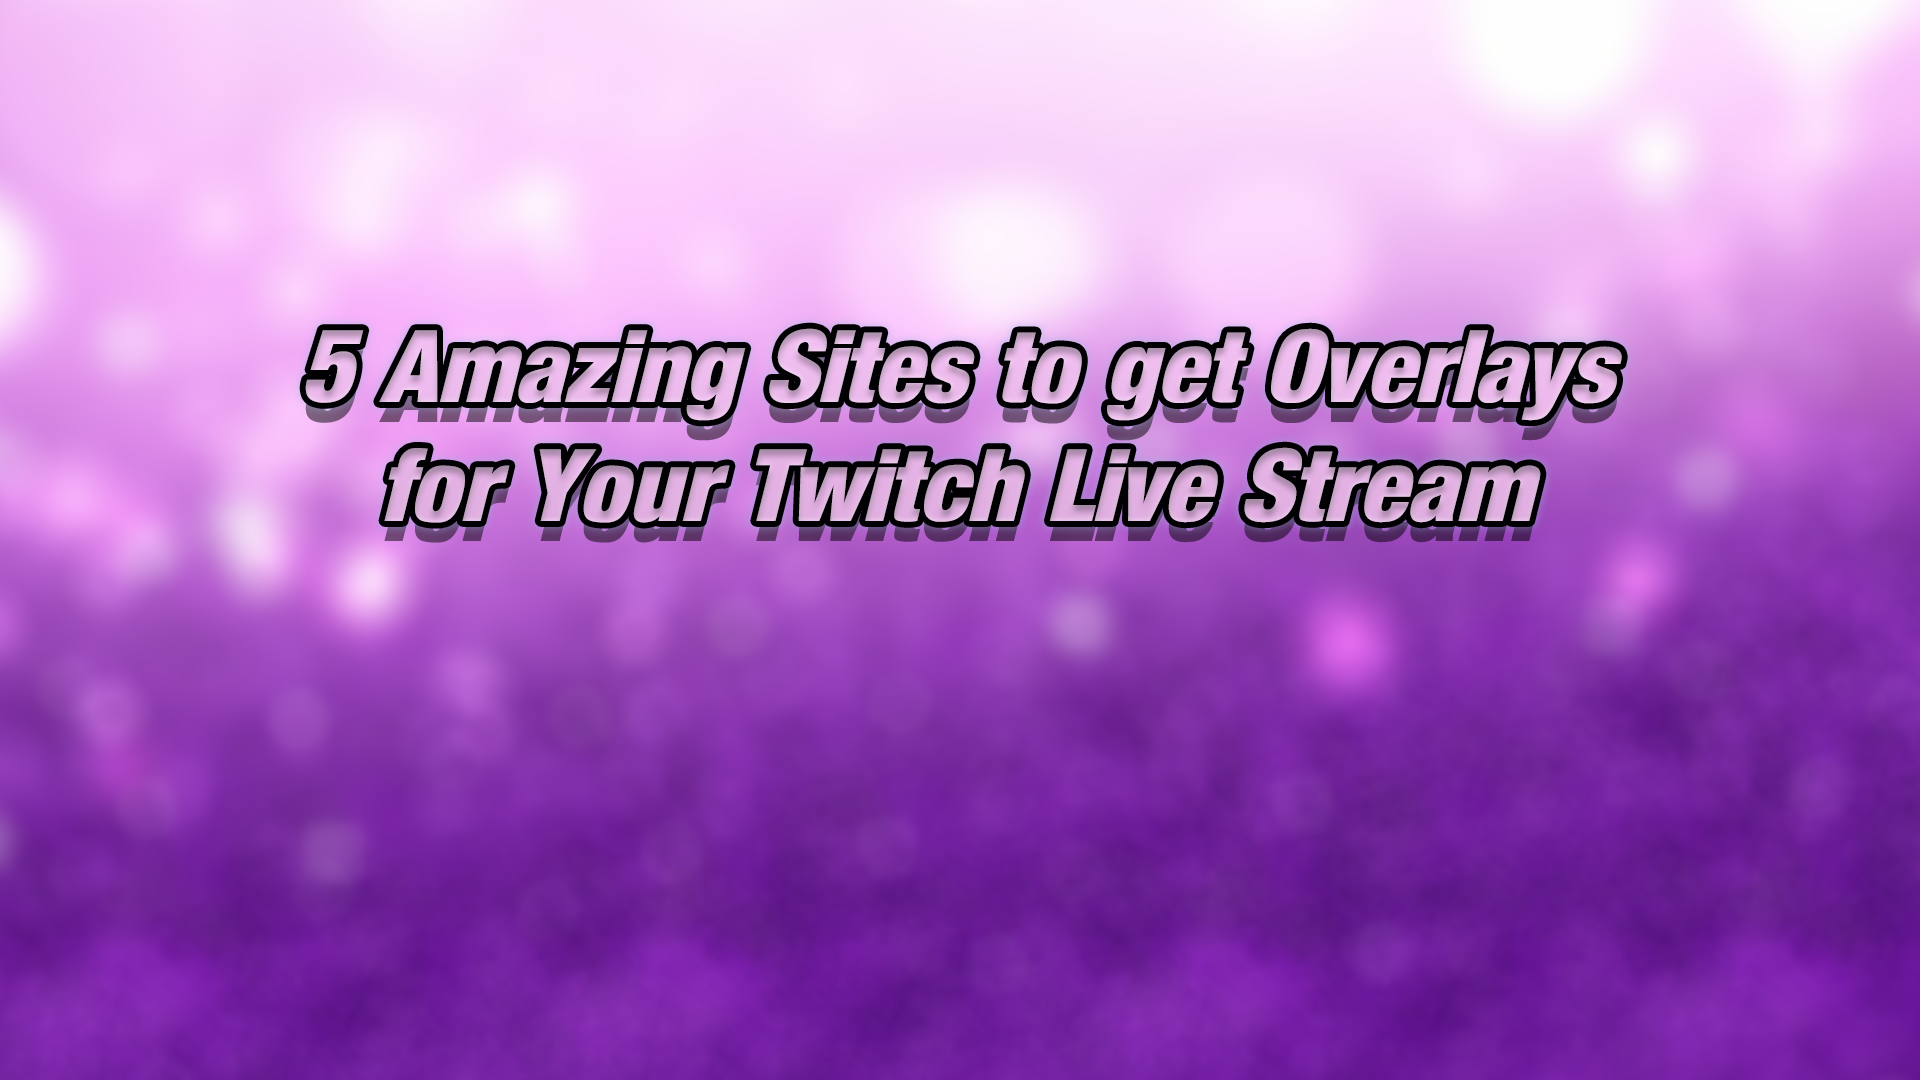 5 Amazing Sites to get Overlays for Your Twitch Live Stream